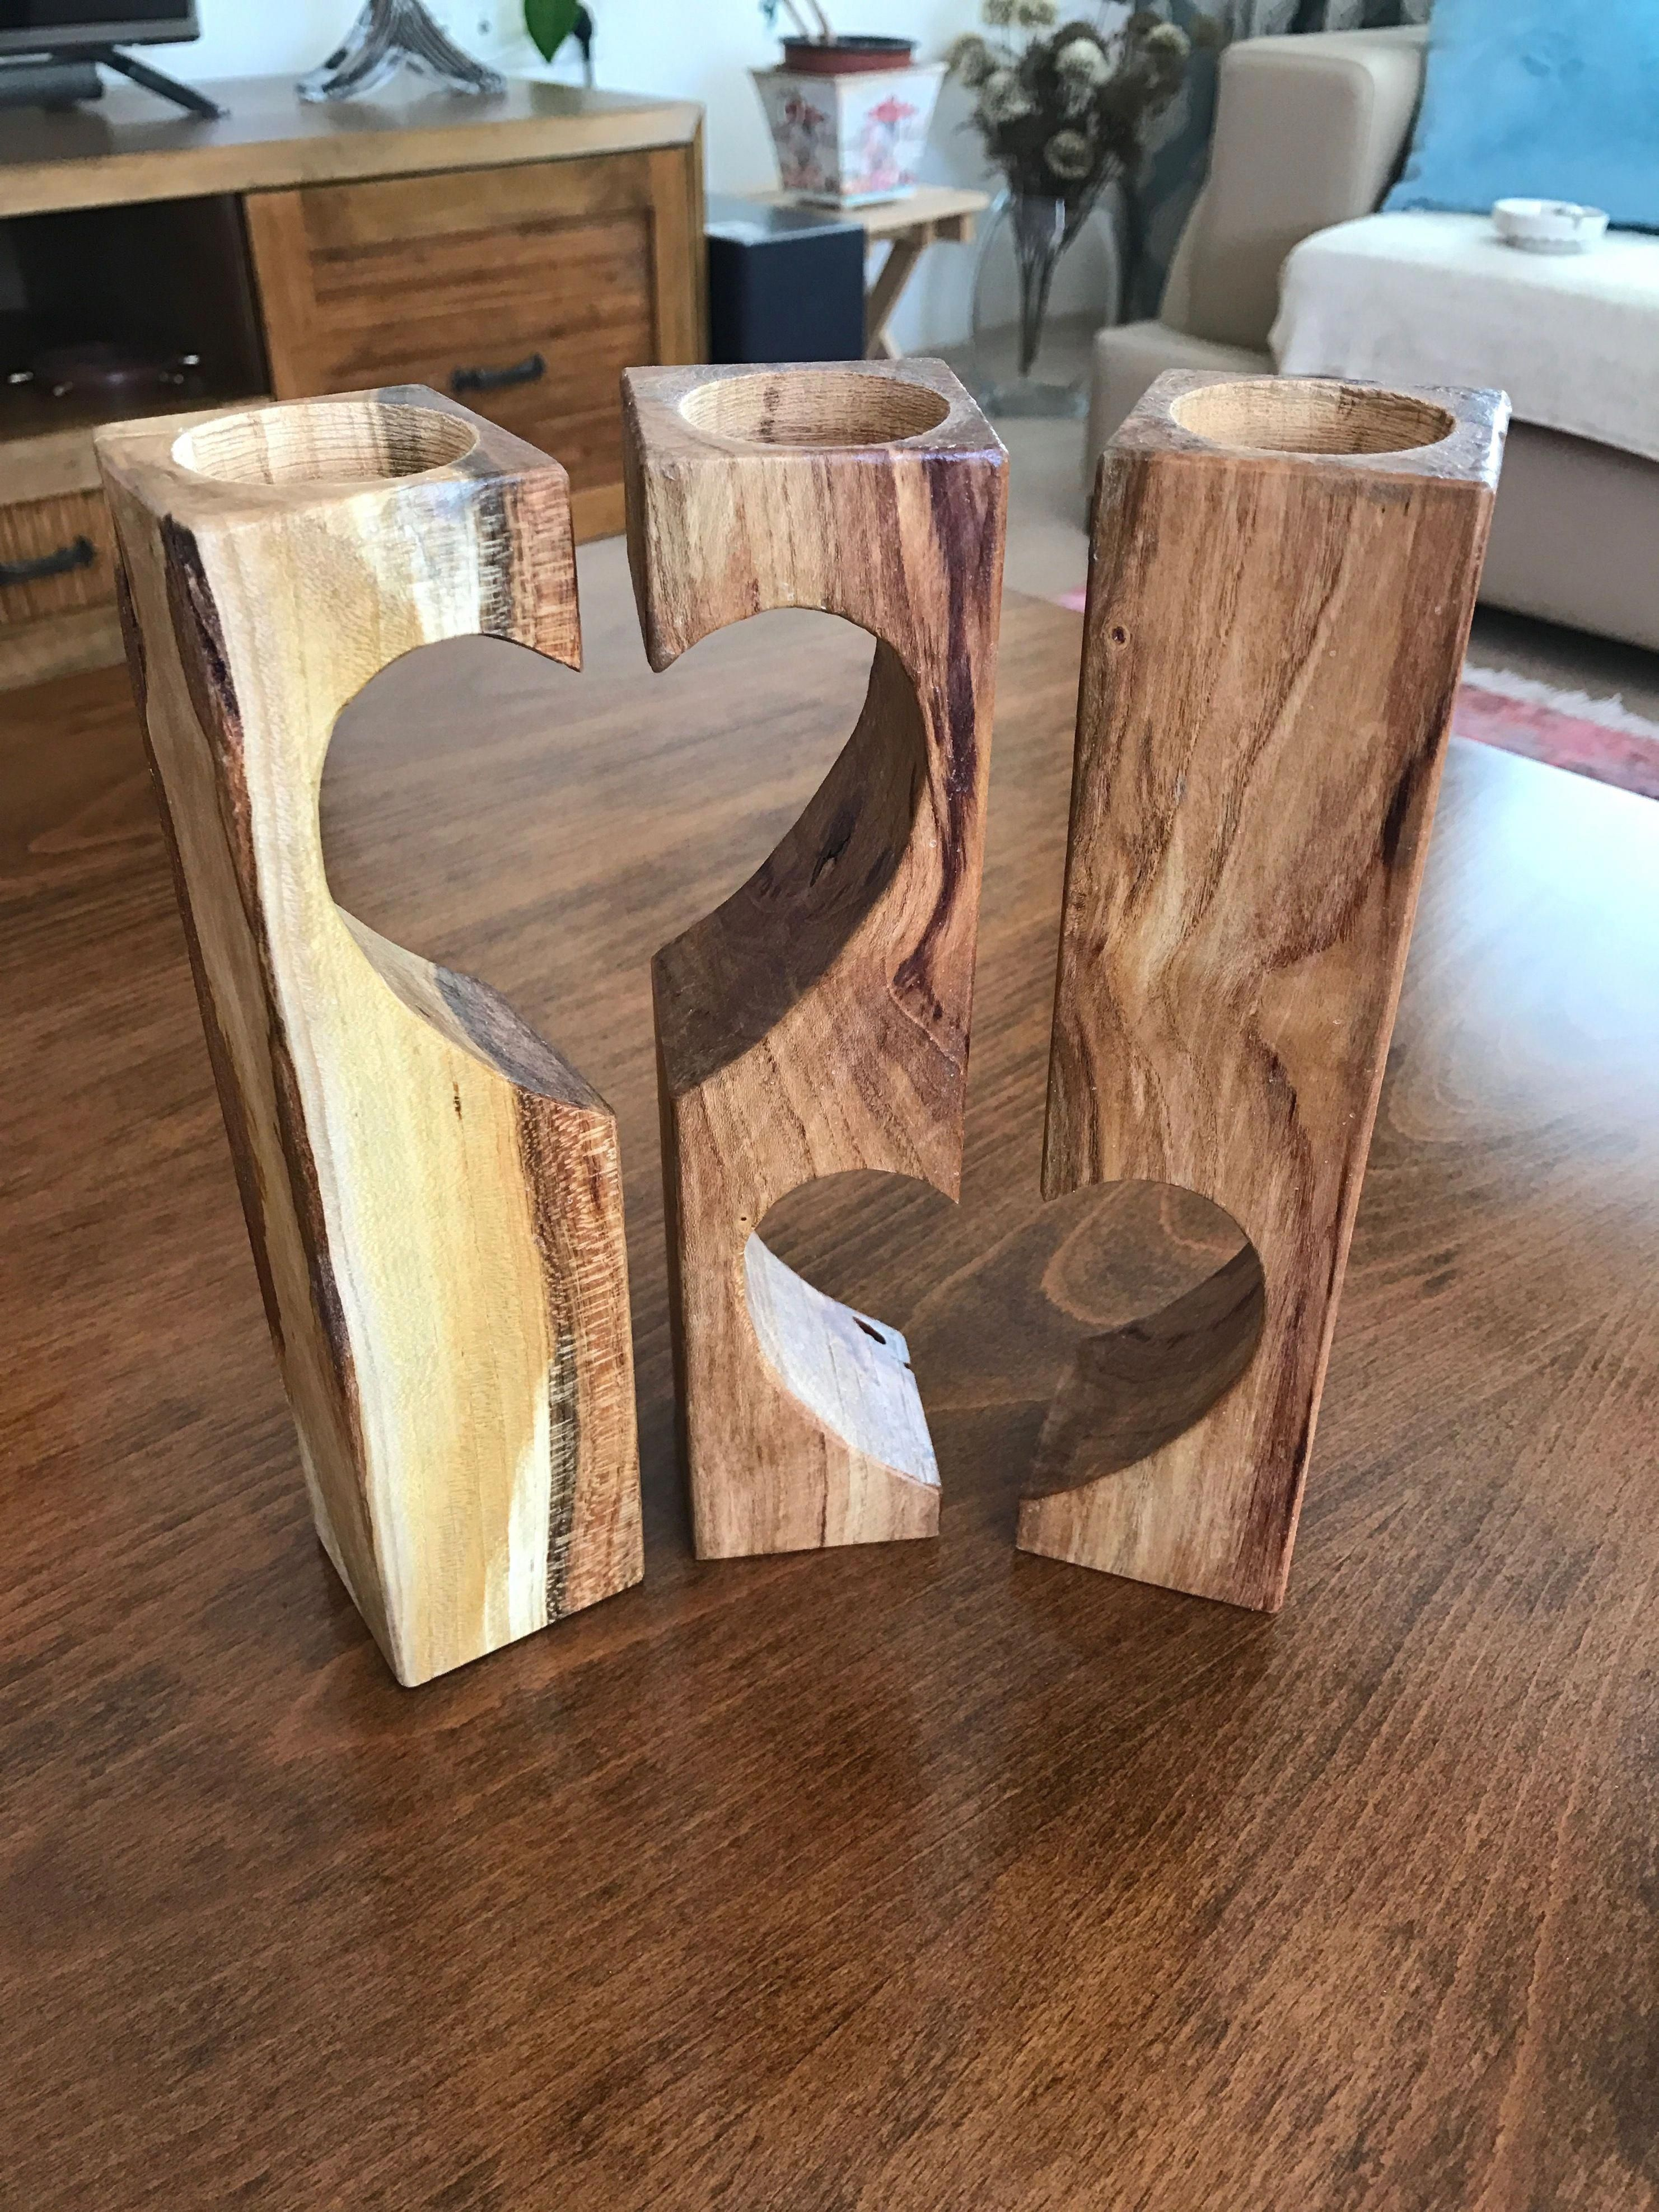 Easy To Make Wood Projects Woodworkcrafts Woodworking Painting